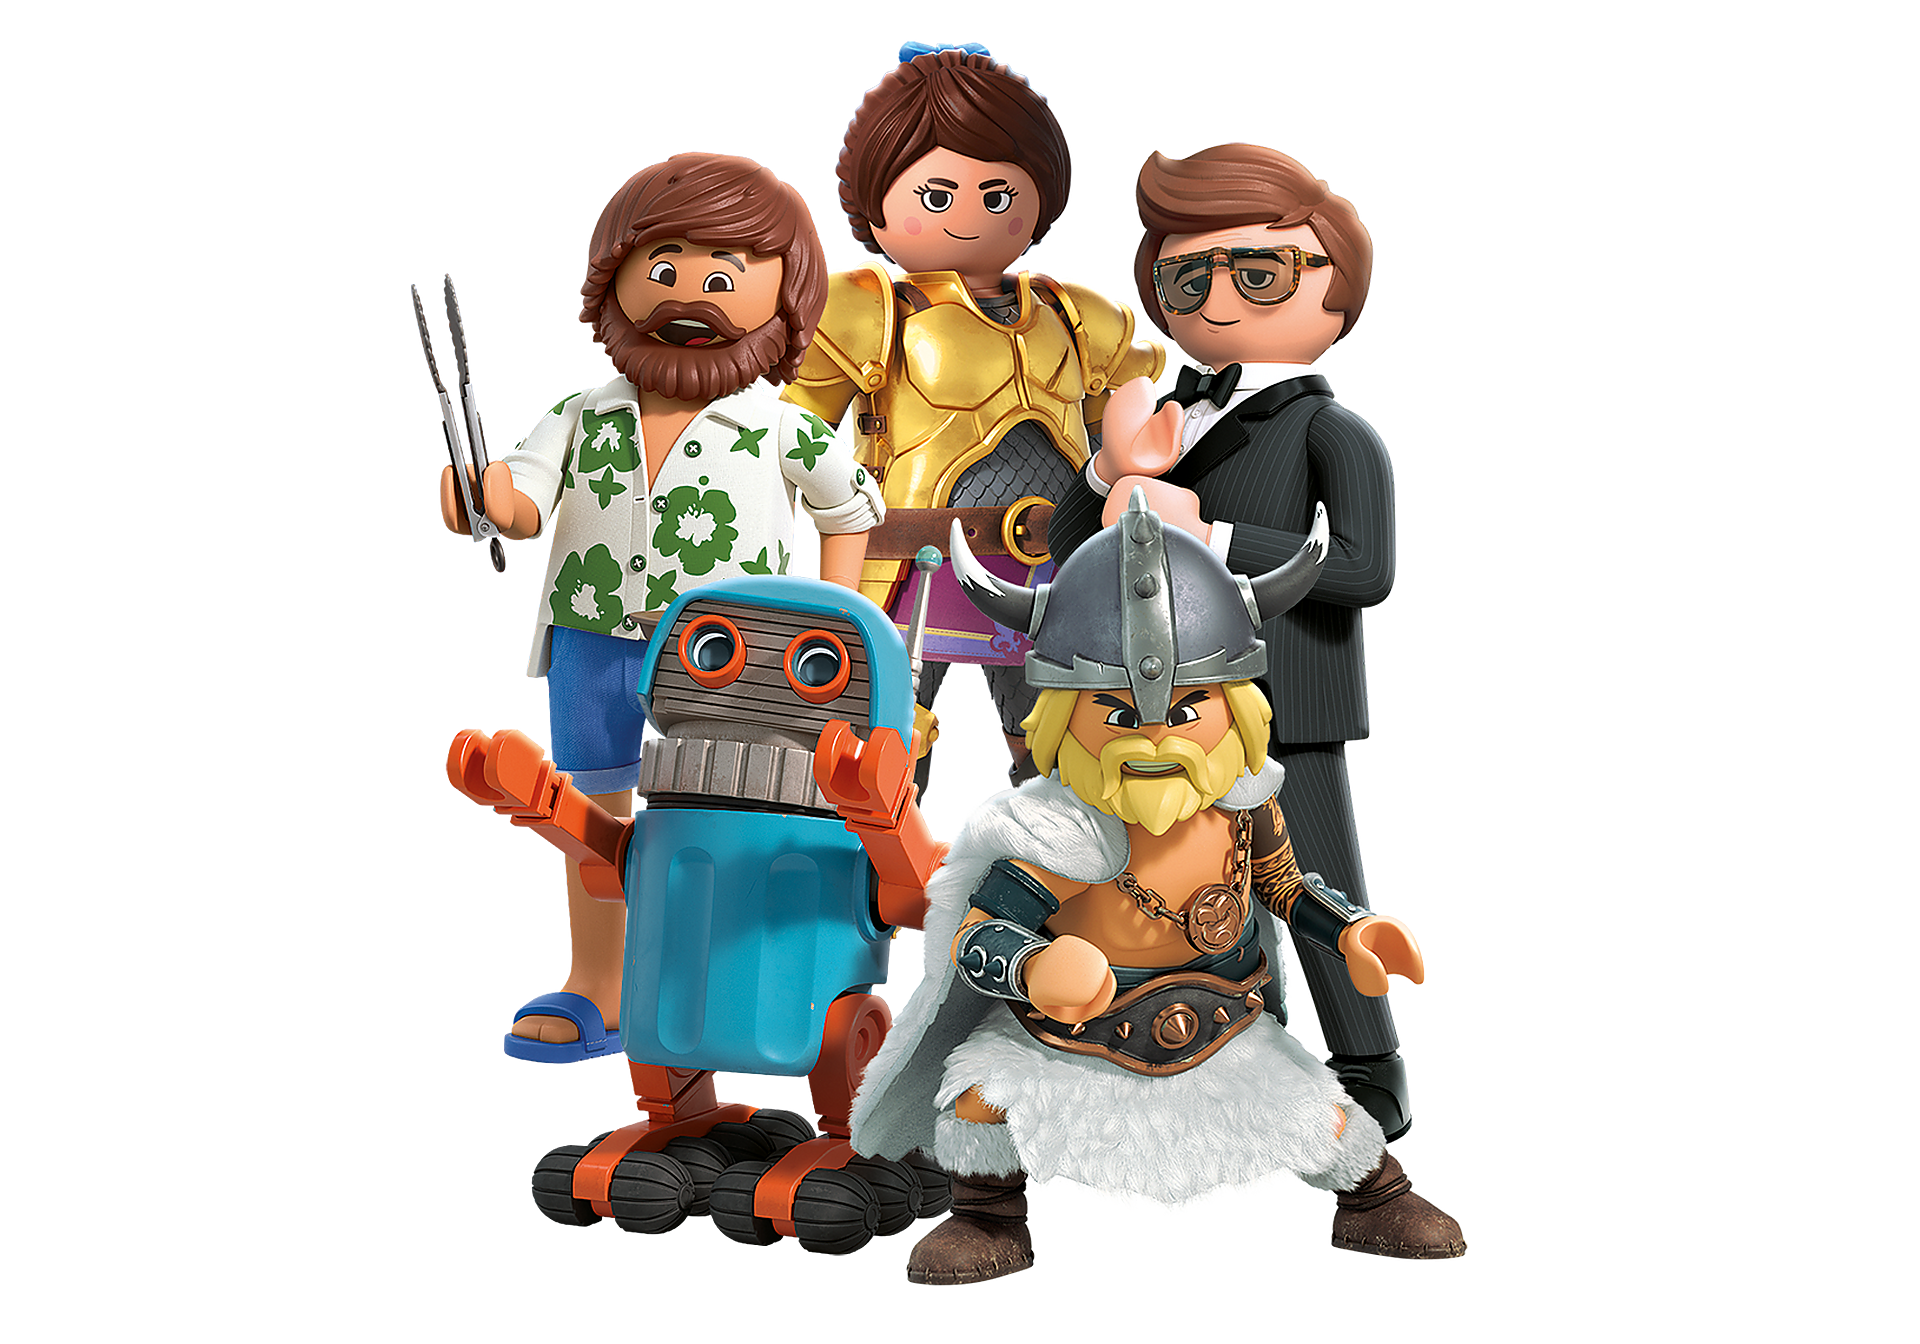 70069 PLAYMOBIL:THE MOVIE Figures (Serie 1) zoom image1